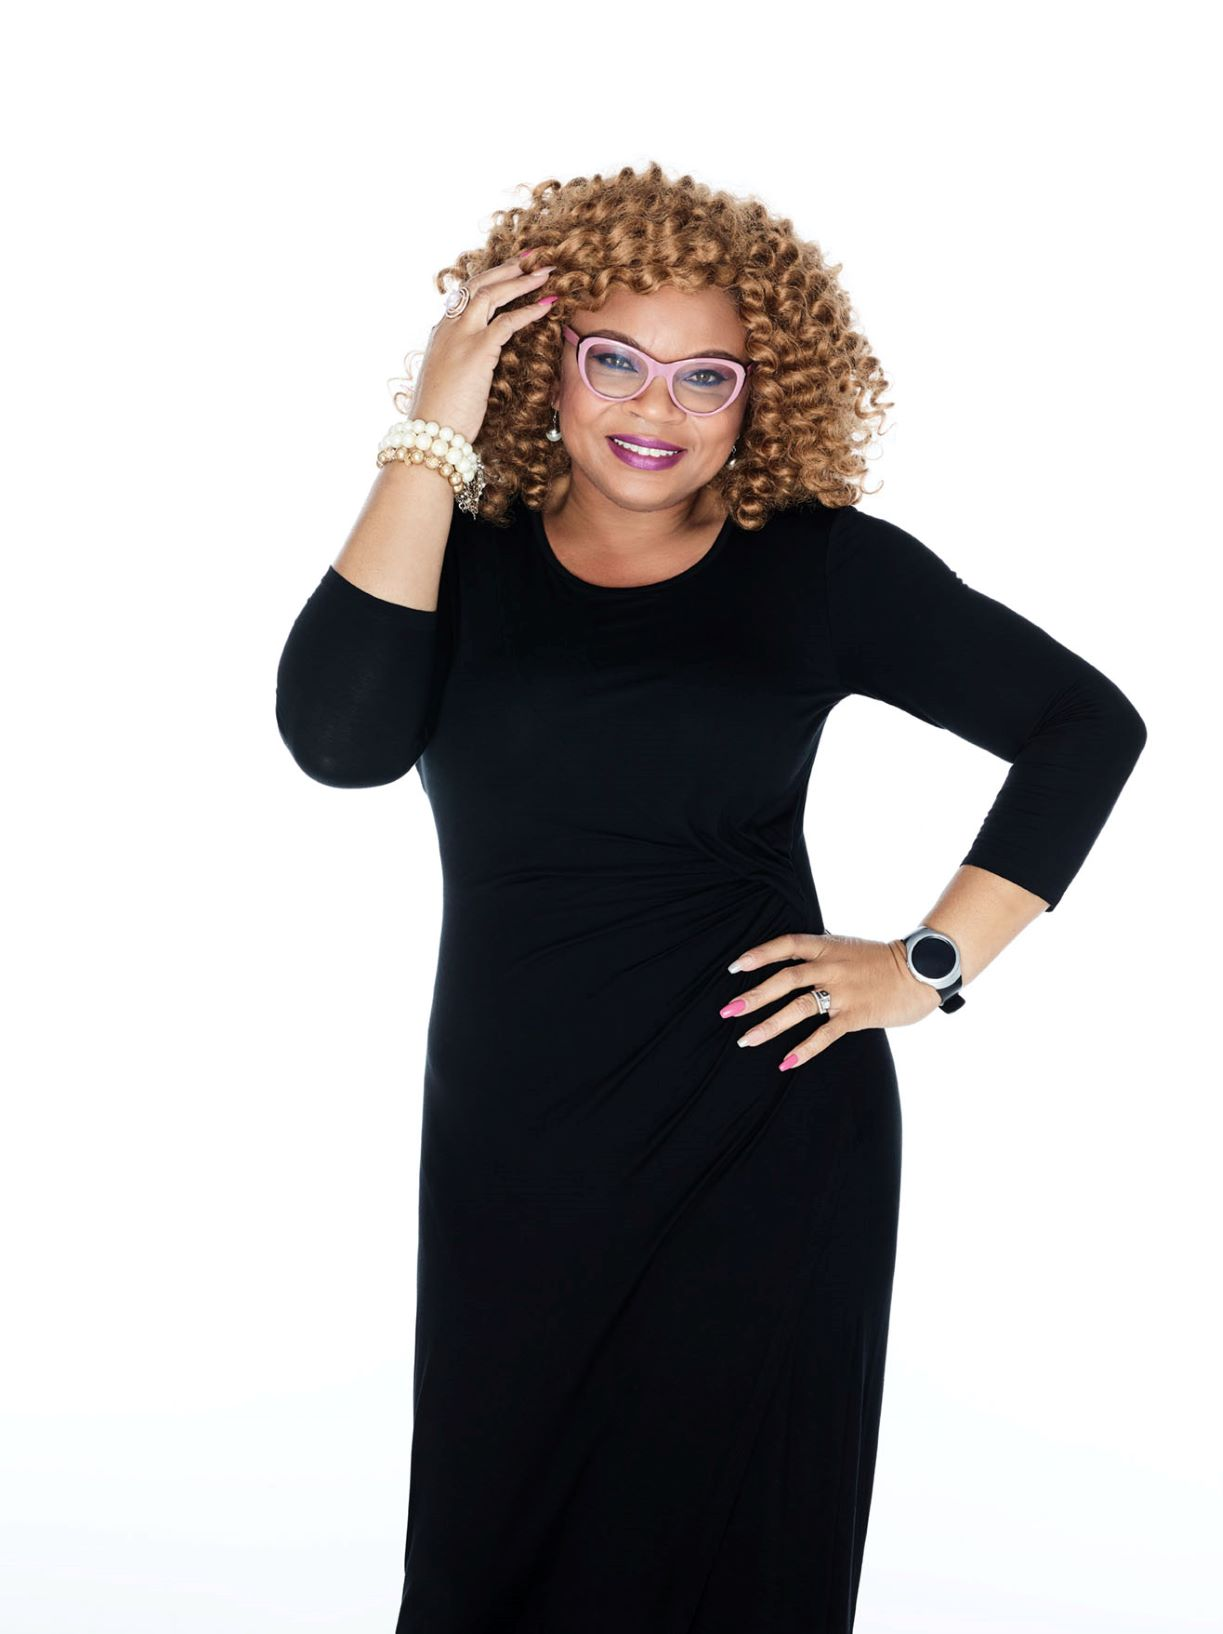 Udy Cheatham feels supported by a company that truly cares for stylists and empowers her to help her team achieve and succeed.